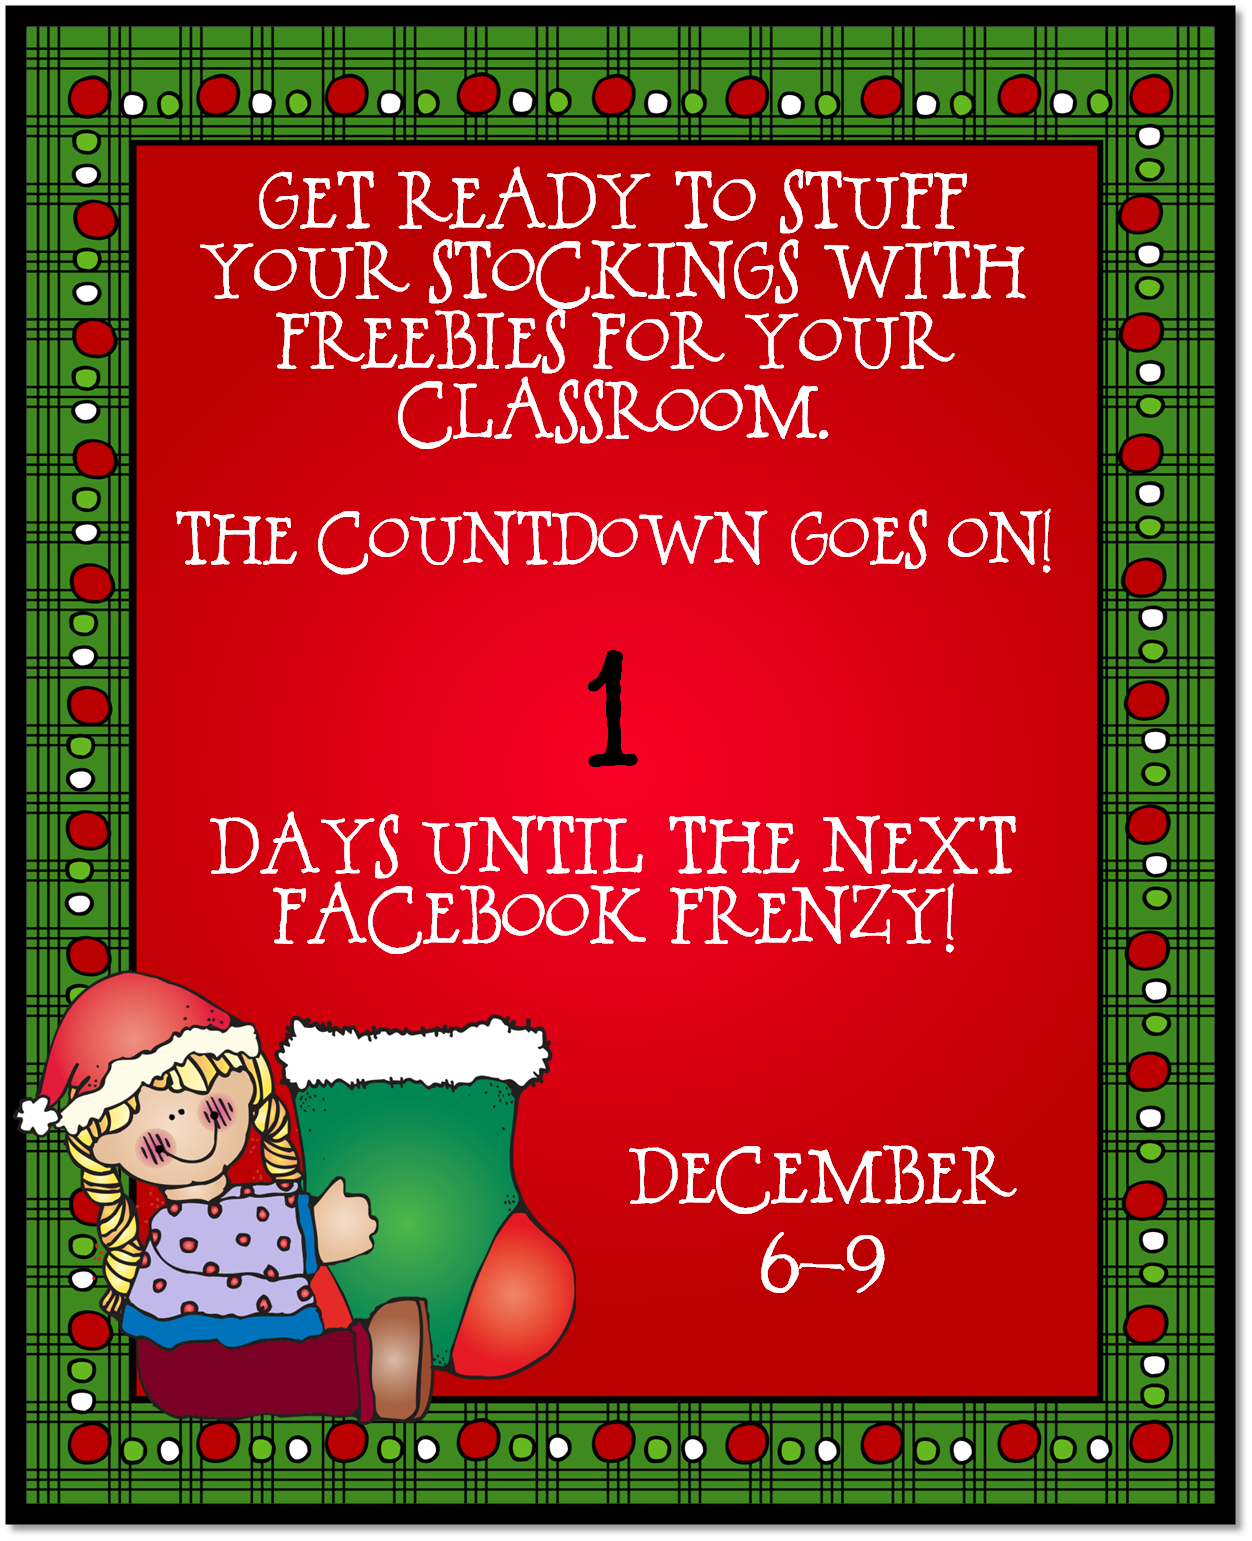 December FB Frenzy Countdown day 1